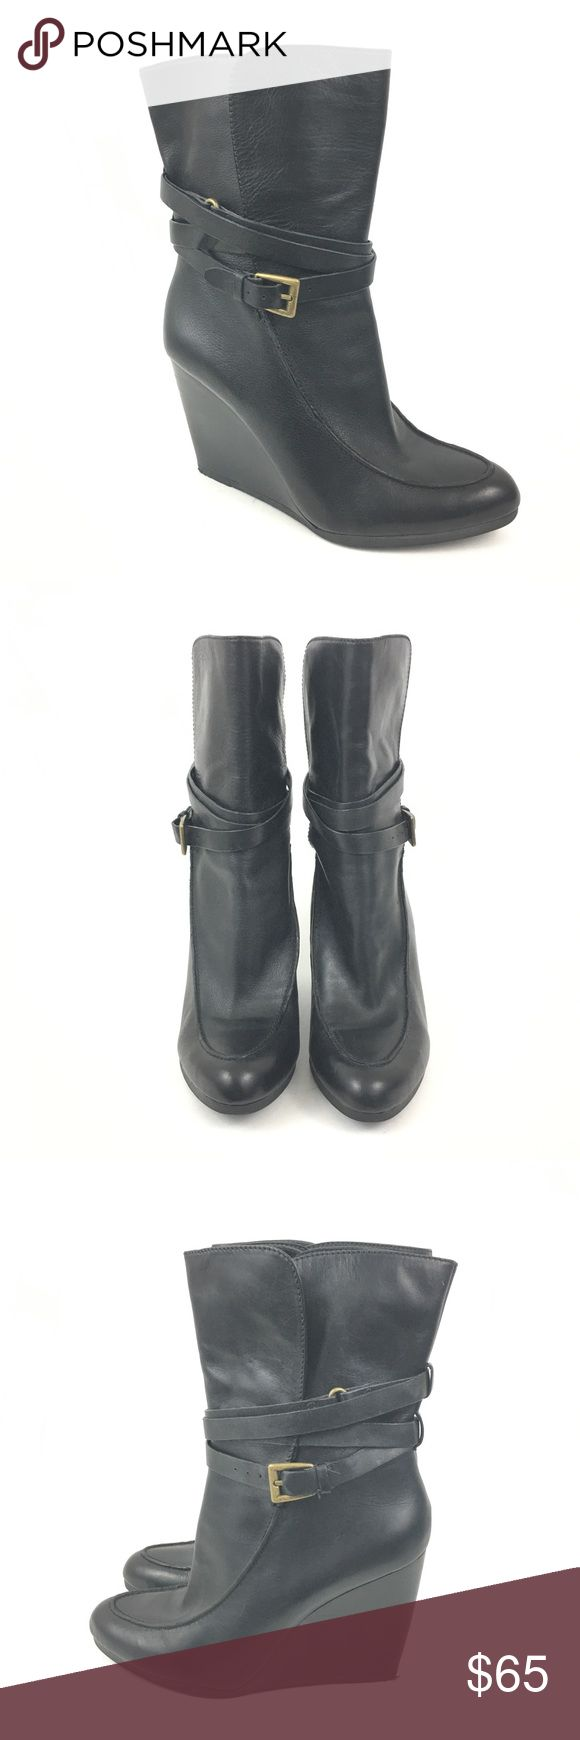 Joan & David Black Leather Wedge Ankle Boots 10M Joan & David Women's Black Daflorita Leather Wedge Pointy Ankle Boots Size 10M. Excellent condition. Joan & David Shoes Ankle Boots & Booties